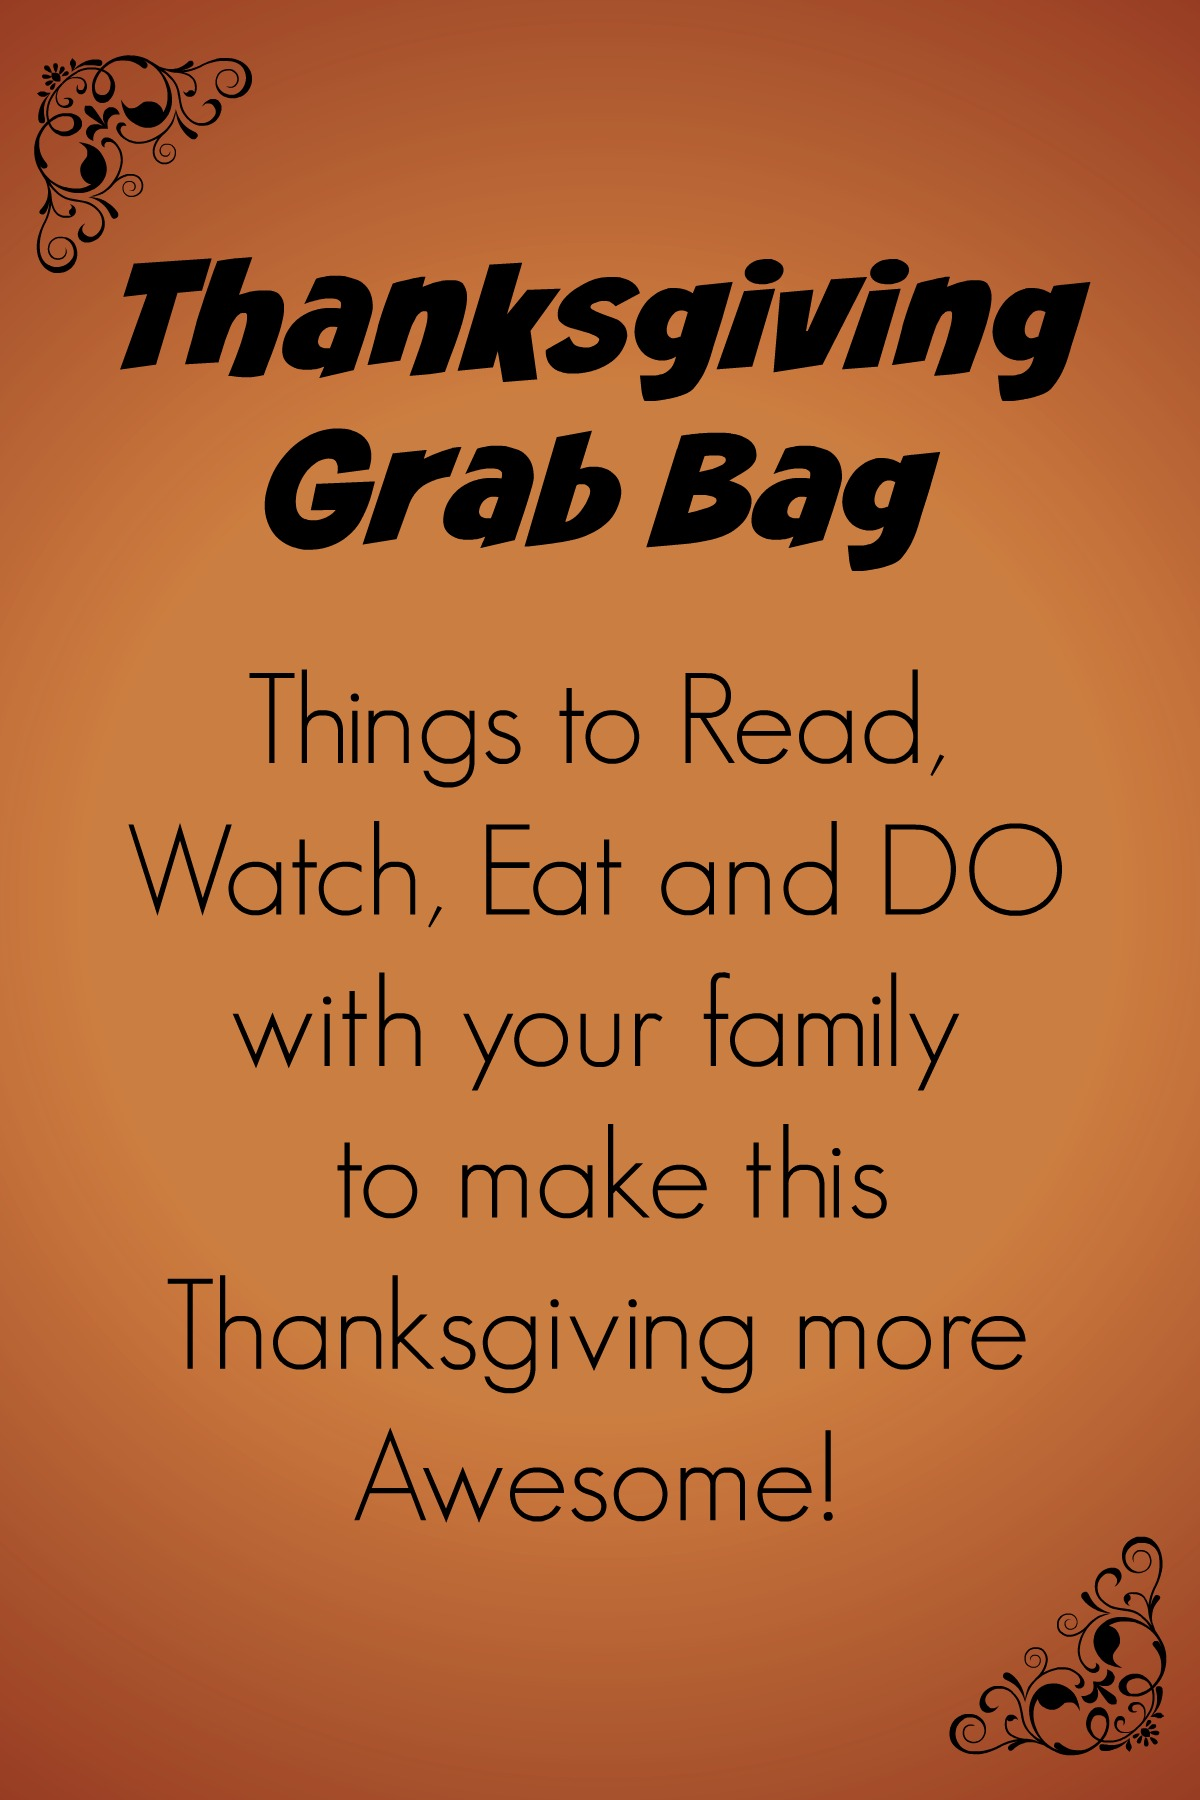 A Thanksgiving Grab Bag